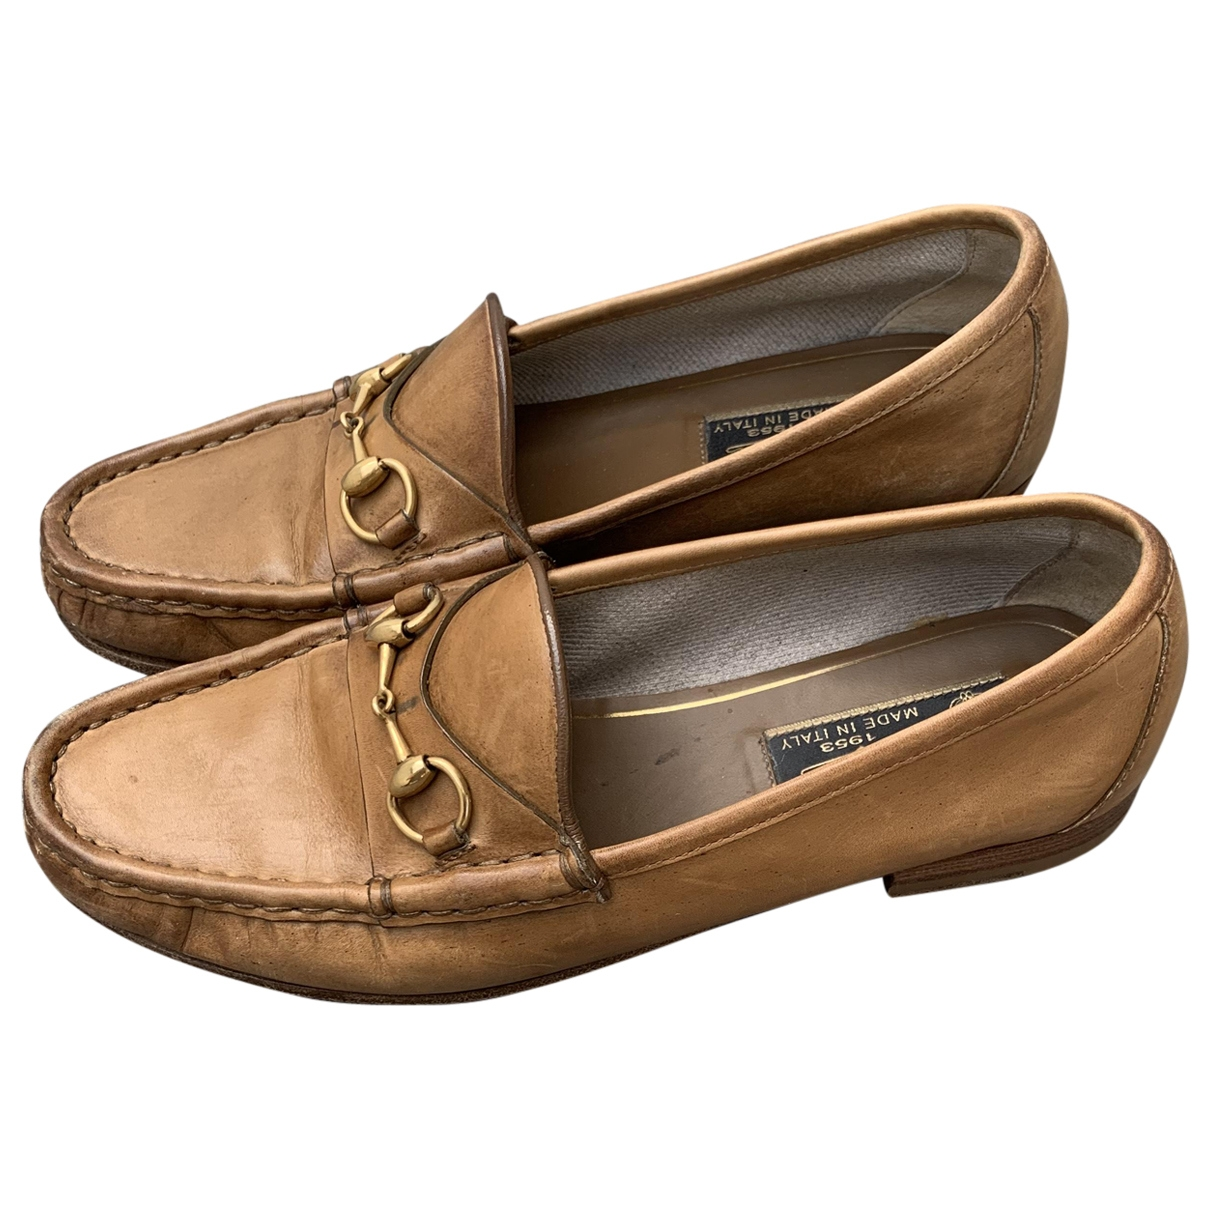 Gucci \N Brown Leather Flats for Women 37 EU